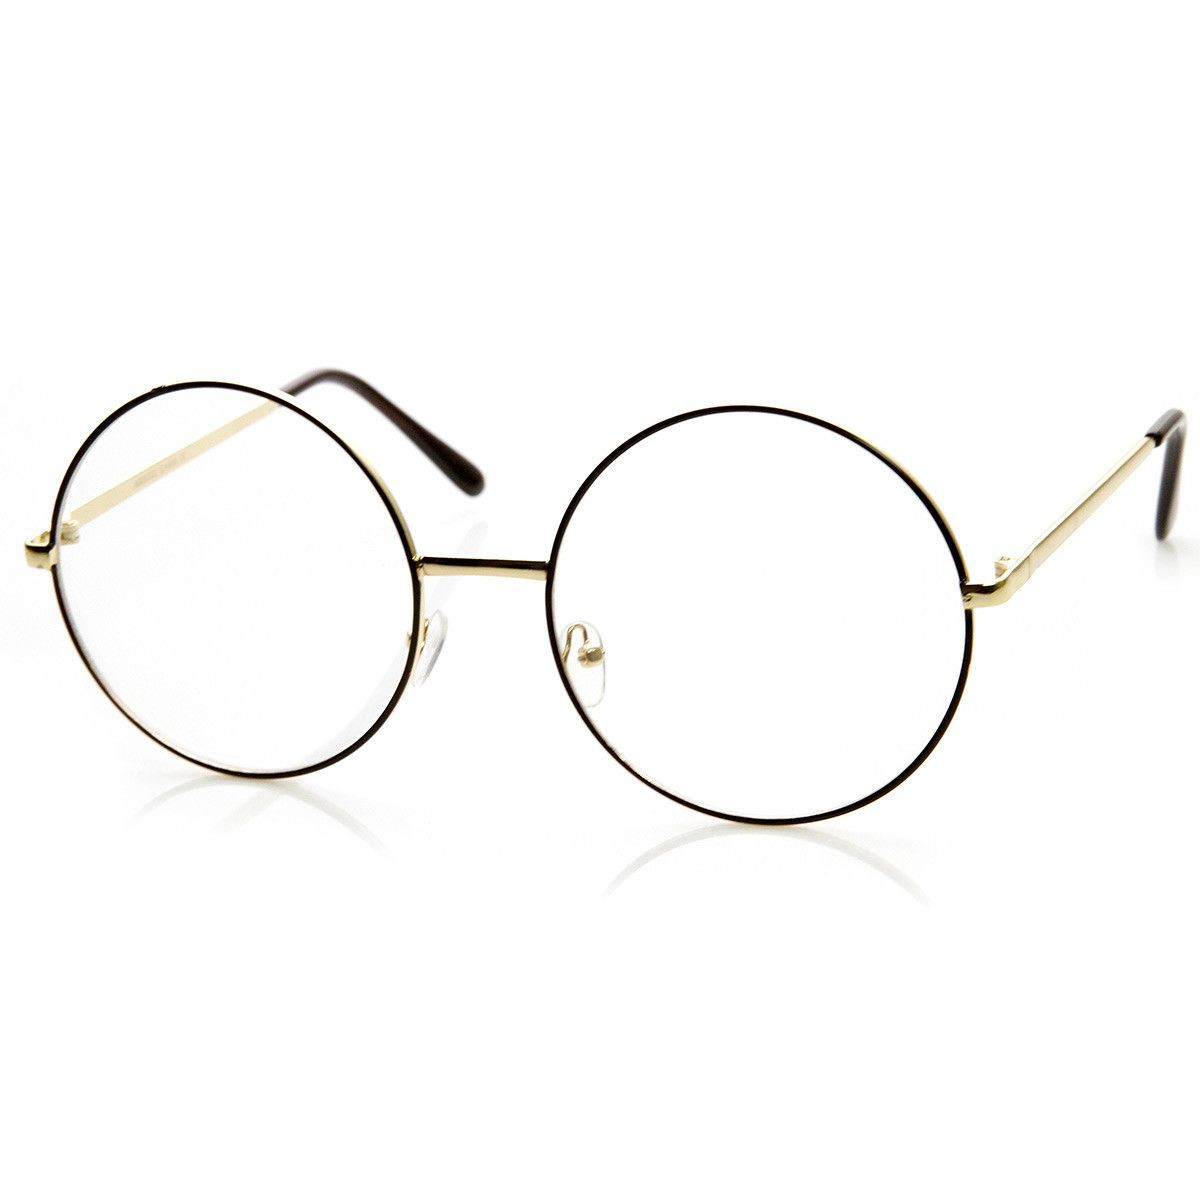 8d65e9569dc 1920 s Vintage Era Large Round Metal Clear Lens Glasses 8714 in 2019 ...